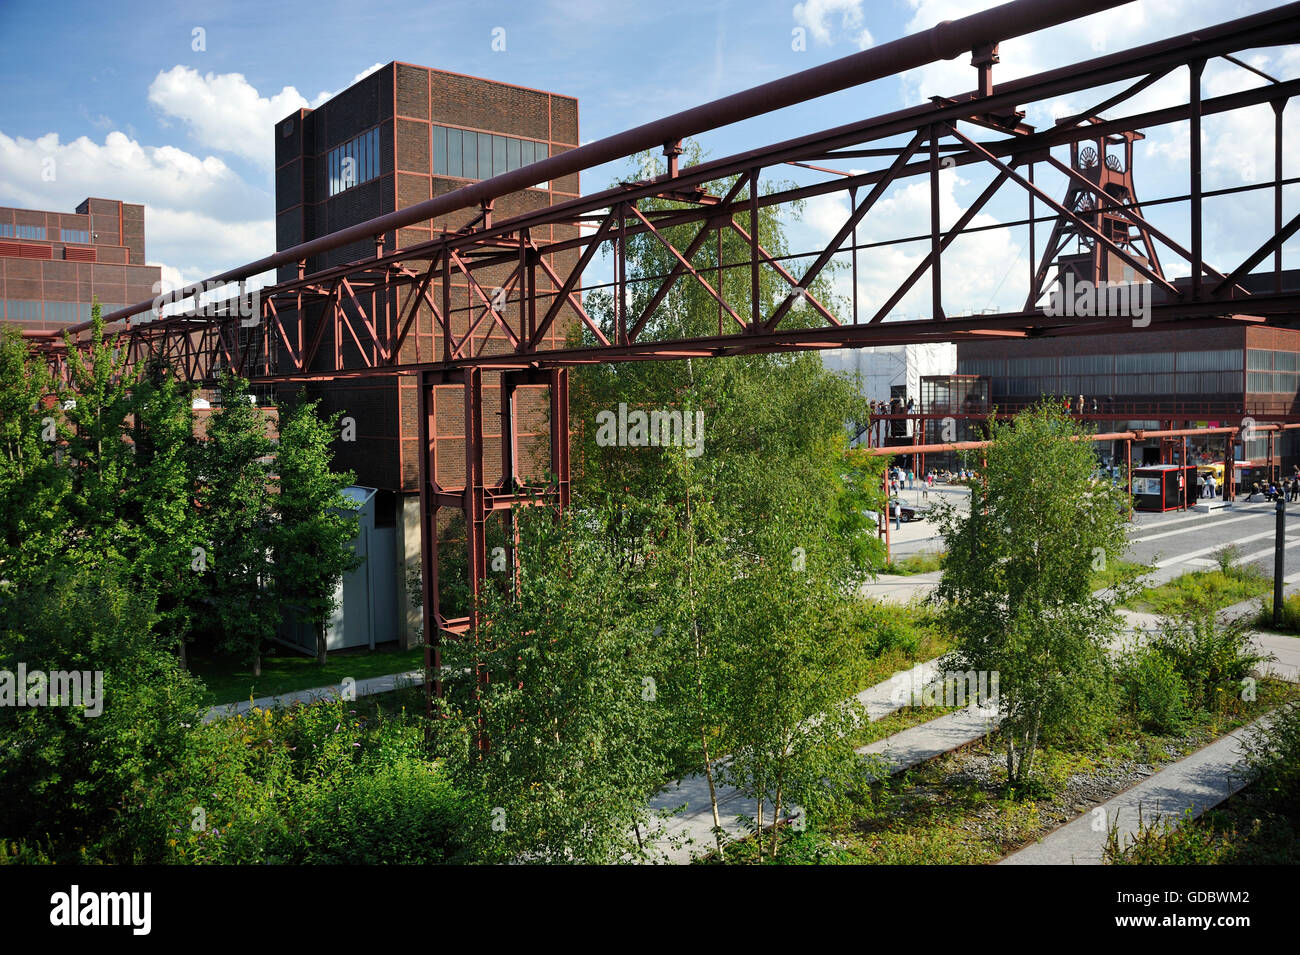 Coal mine Zollverein, Essen, Ruhr area, North Rhine-Westphalia, Germany / Industrial Heritage Trail - Stock Image